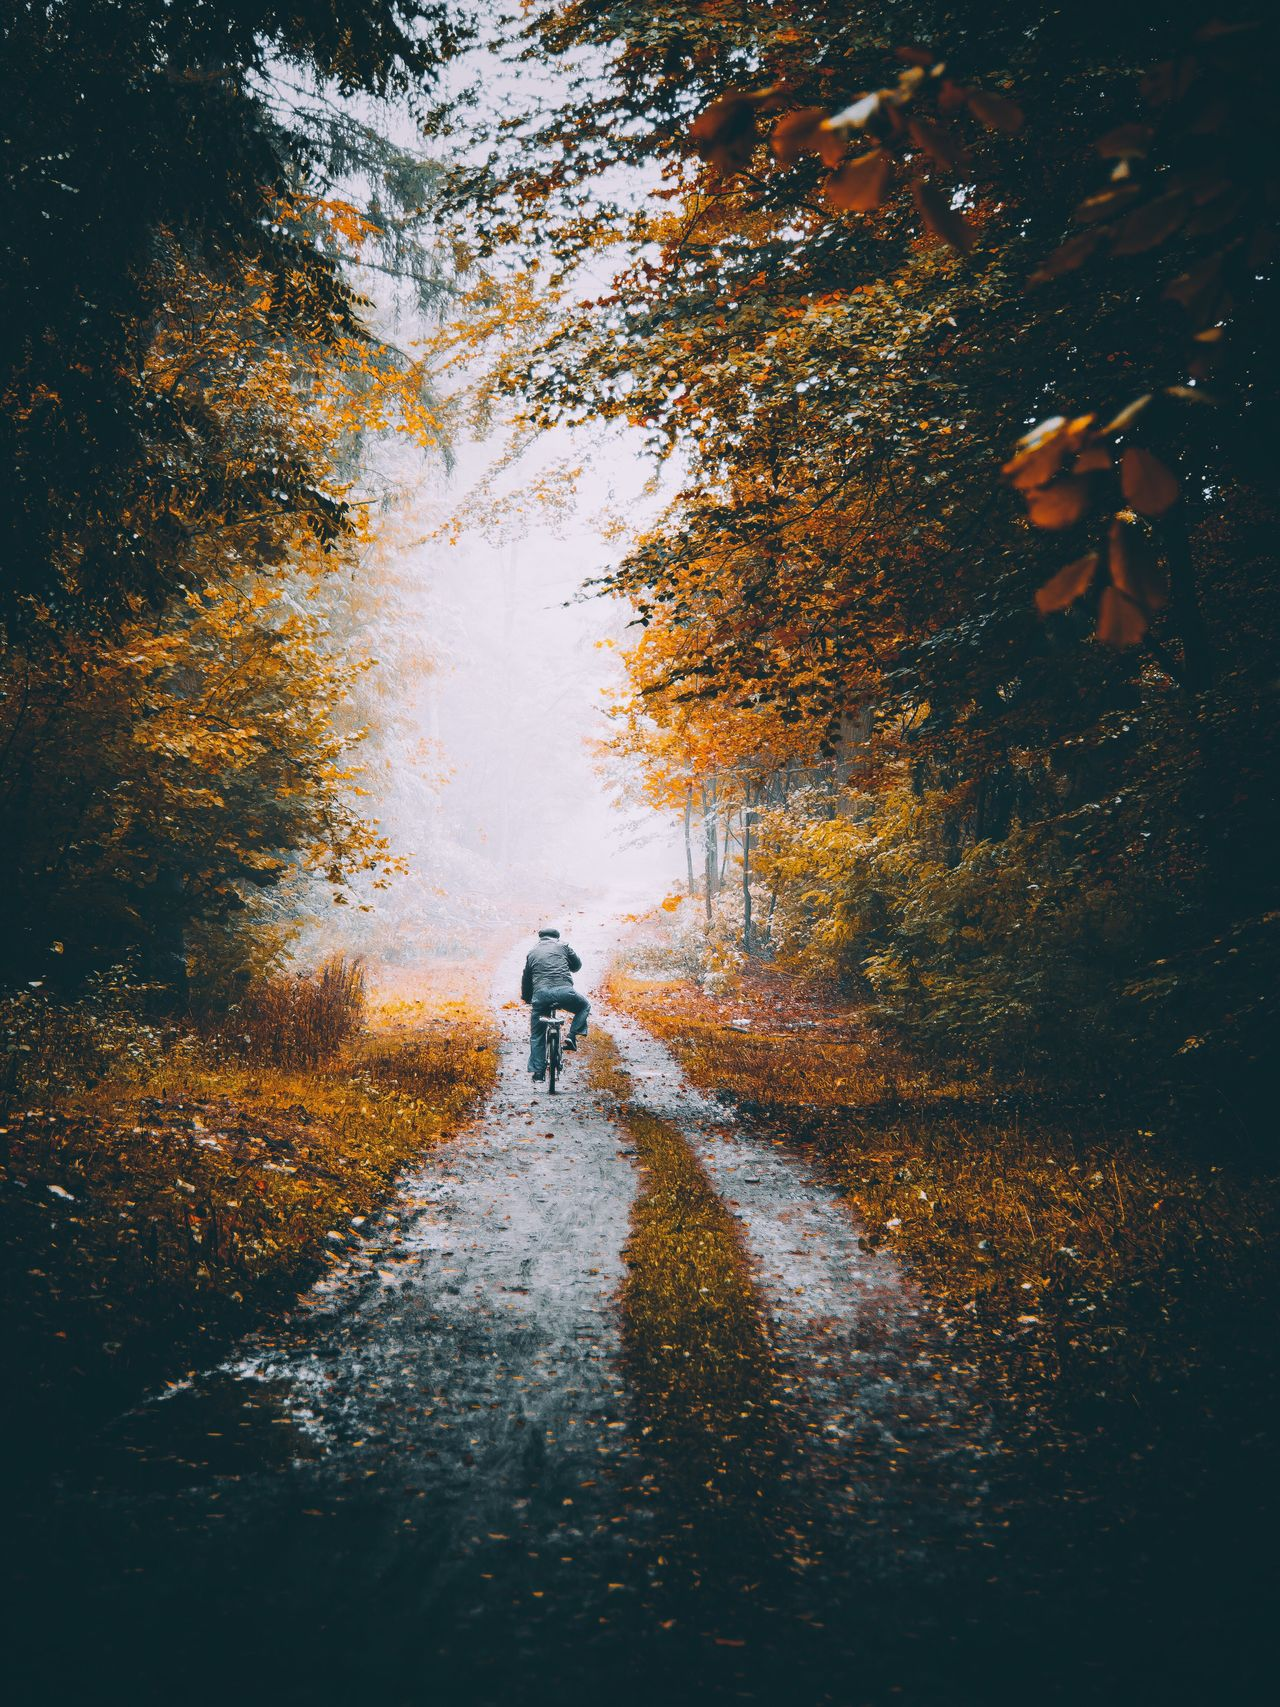 Rear view of man on bicycle in an autumn day